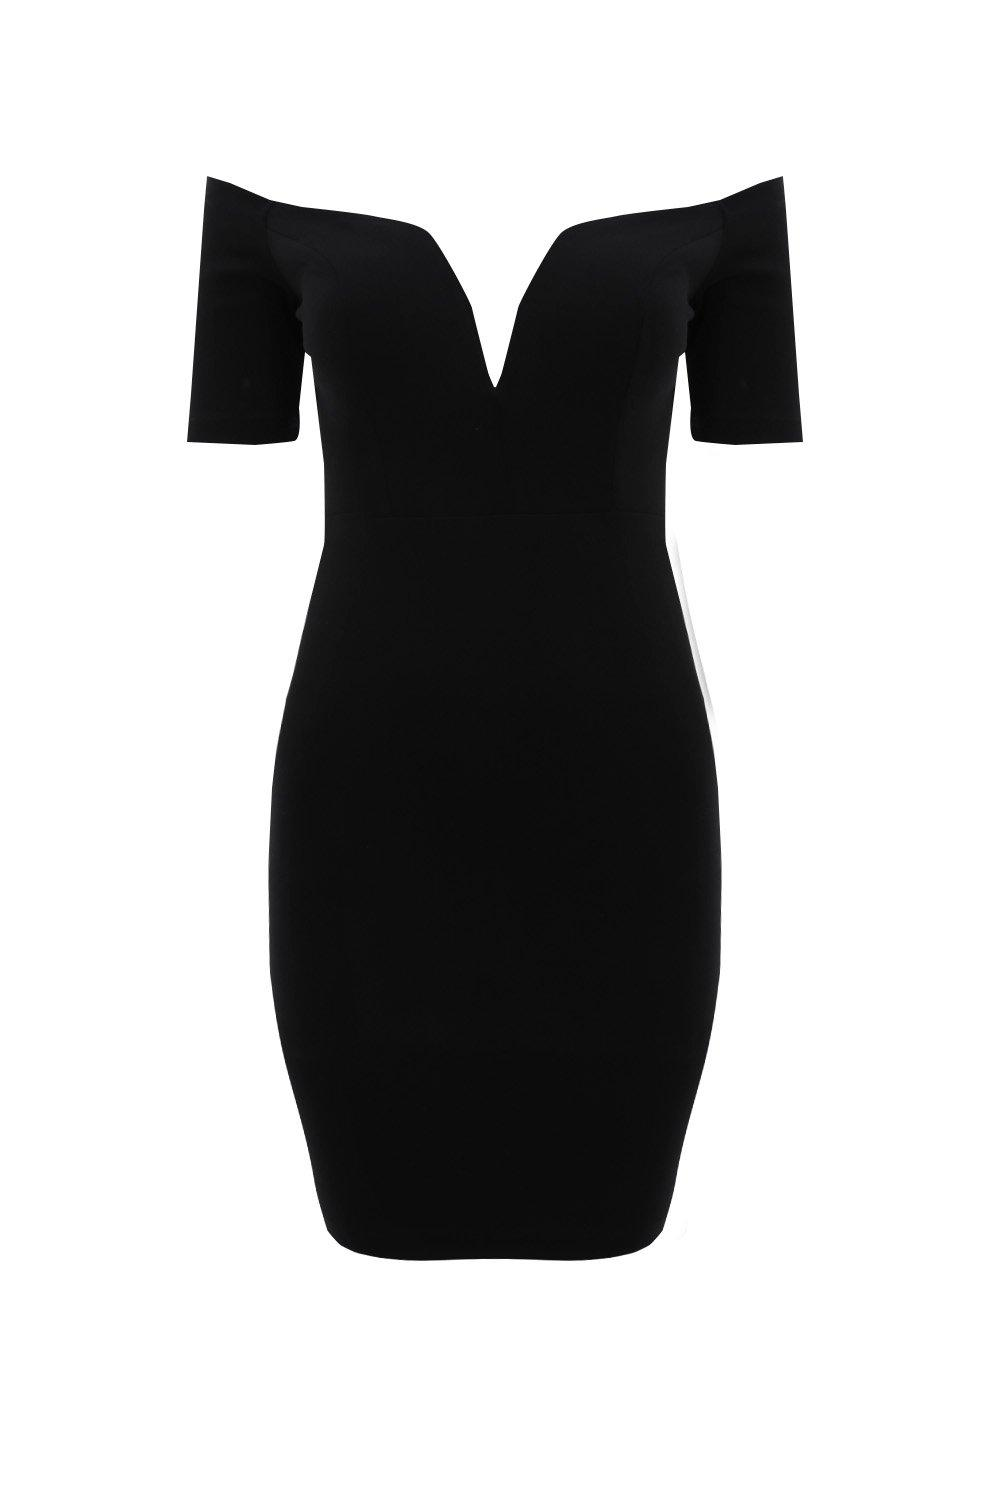 a8a1a439e6278 One Way or Another Off-the-Shoulder Dress